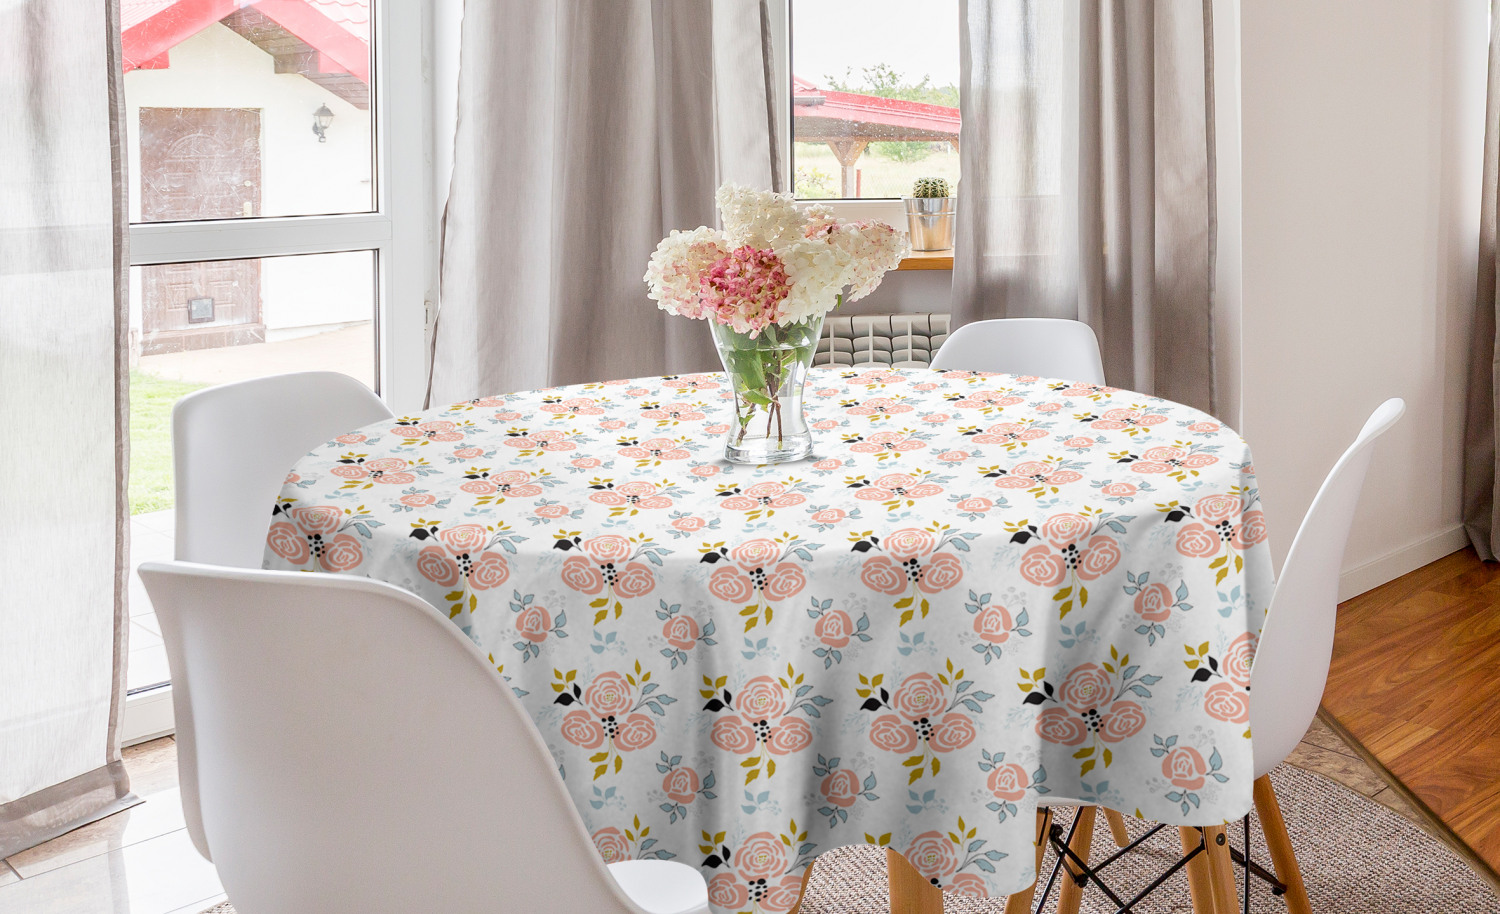 Flower Round Tablecloth Abstract Simplistic Delicate Floral Art Pattern Circle Table Cloth Cover For Dining Room Kitchen Decor 60 Blush White Fawn By Ambesonne Walmart Com Walmart Com